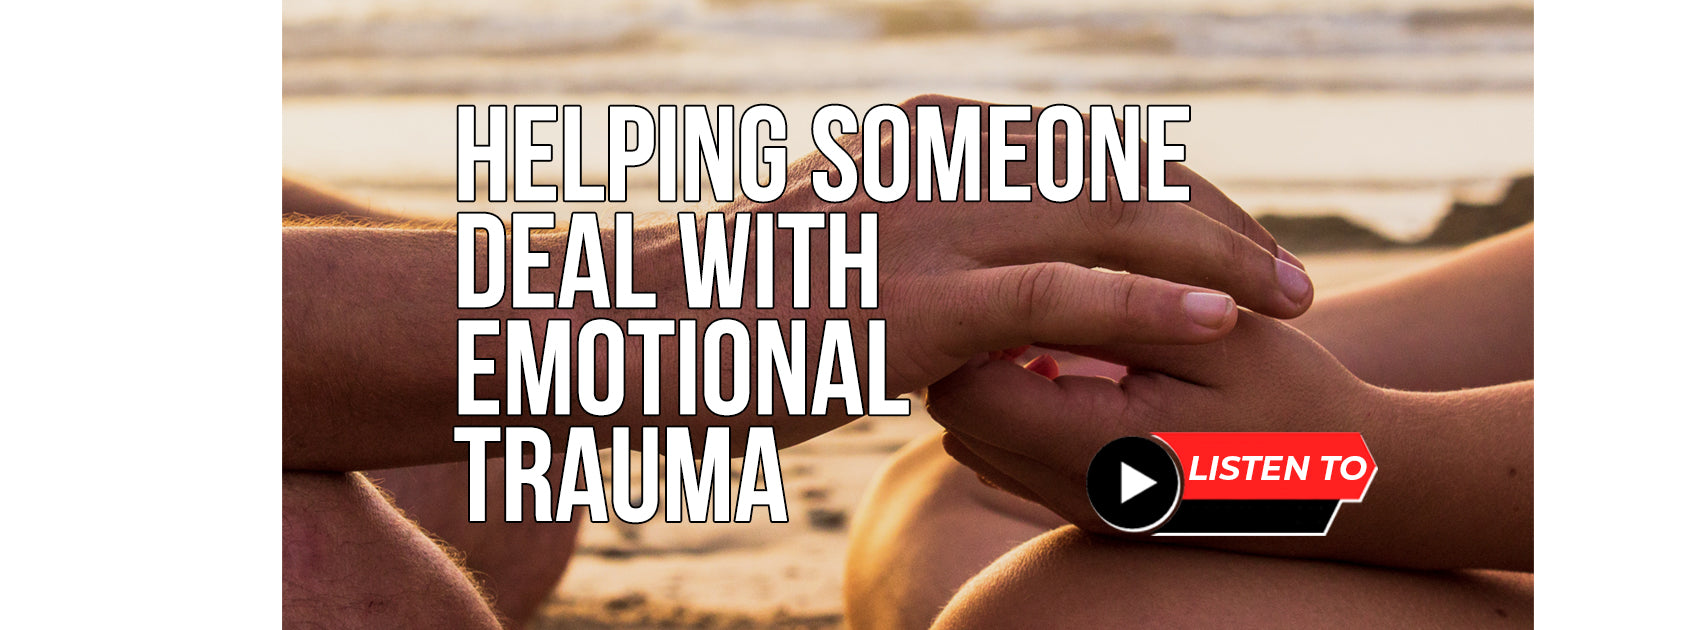 Helping Someone Deal With Emotional Trauma